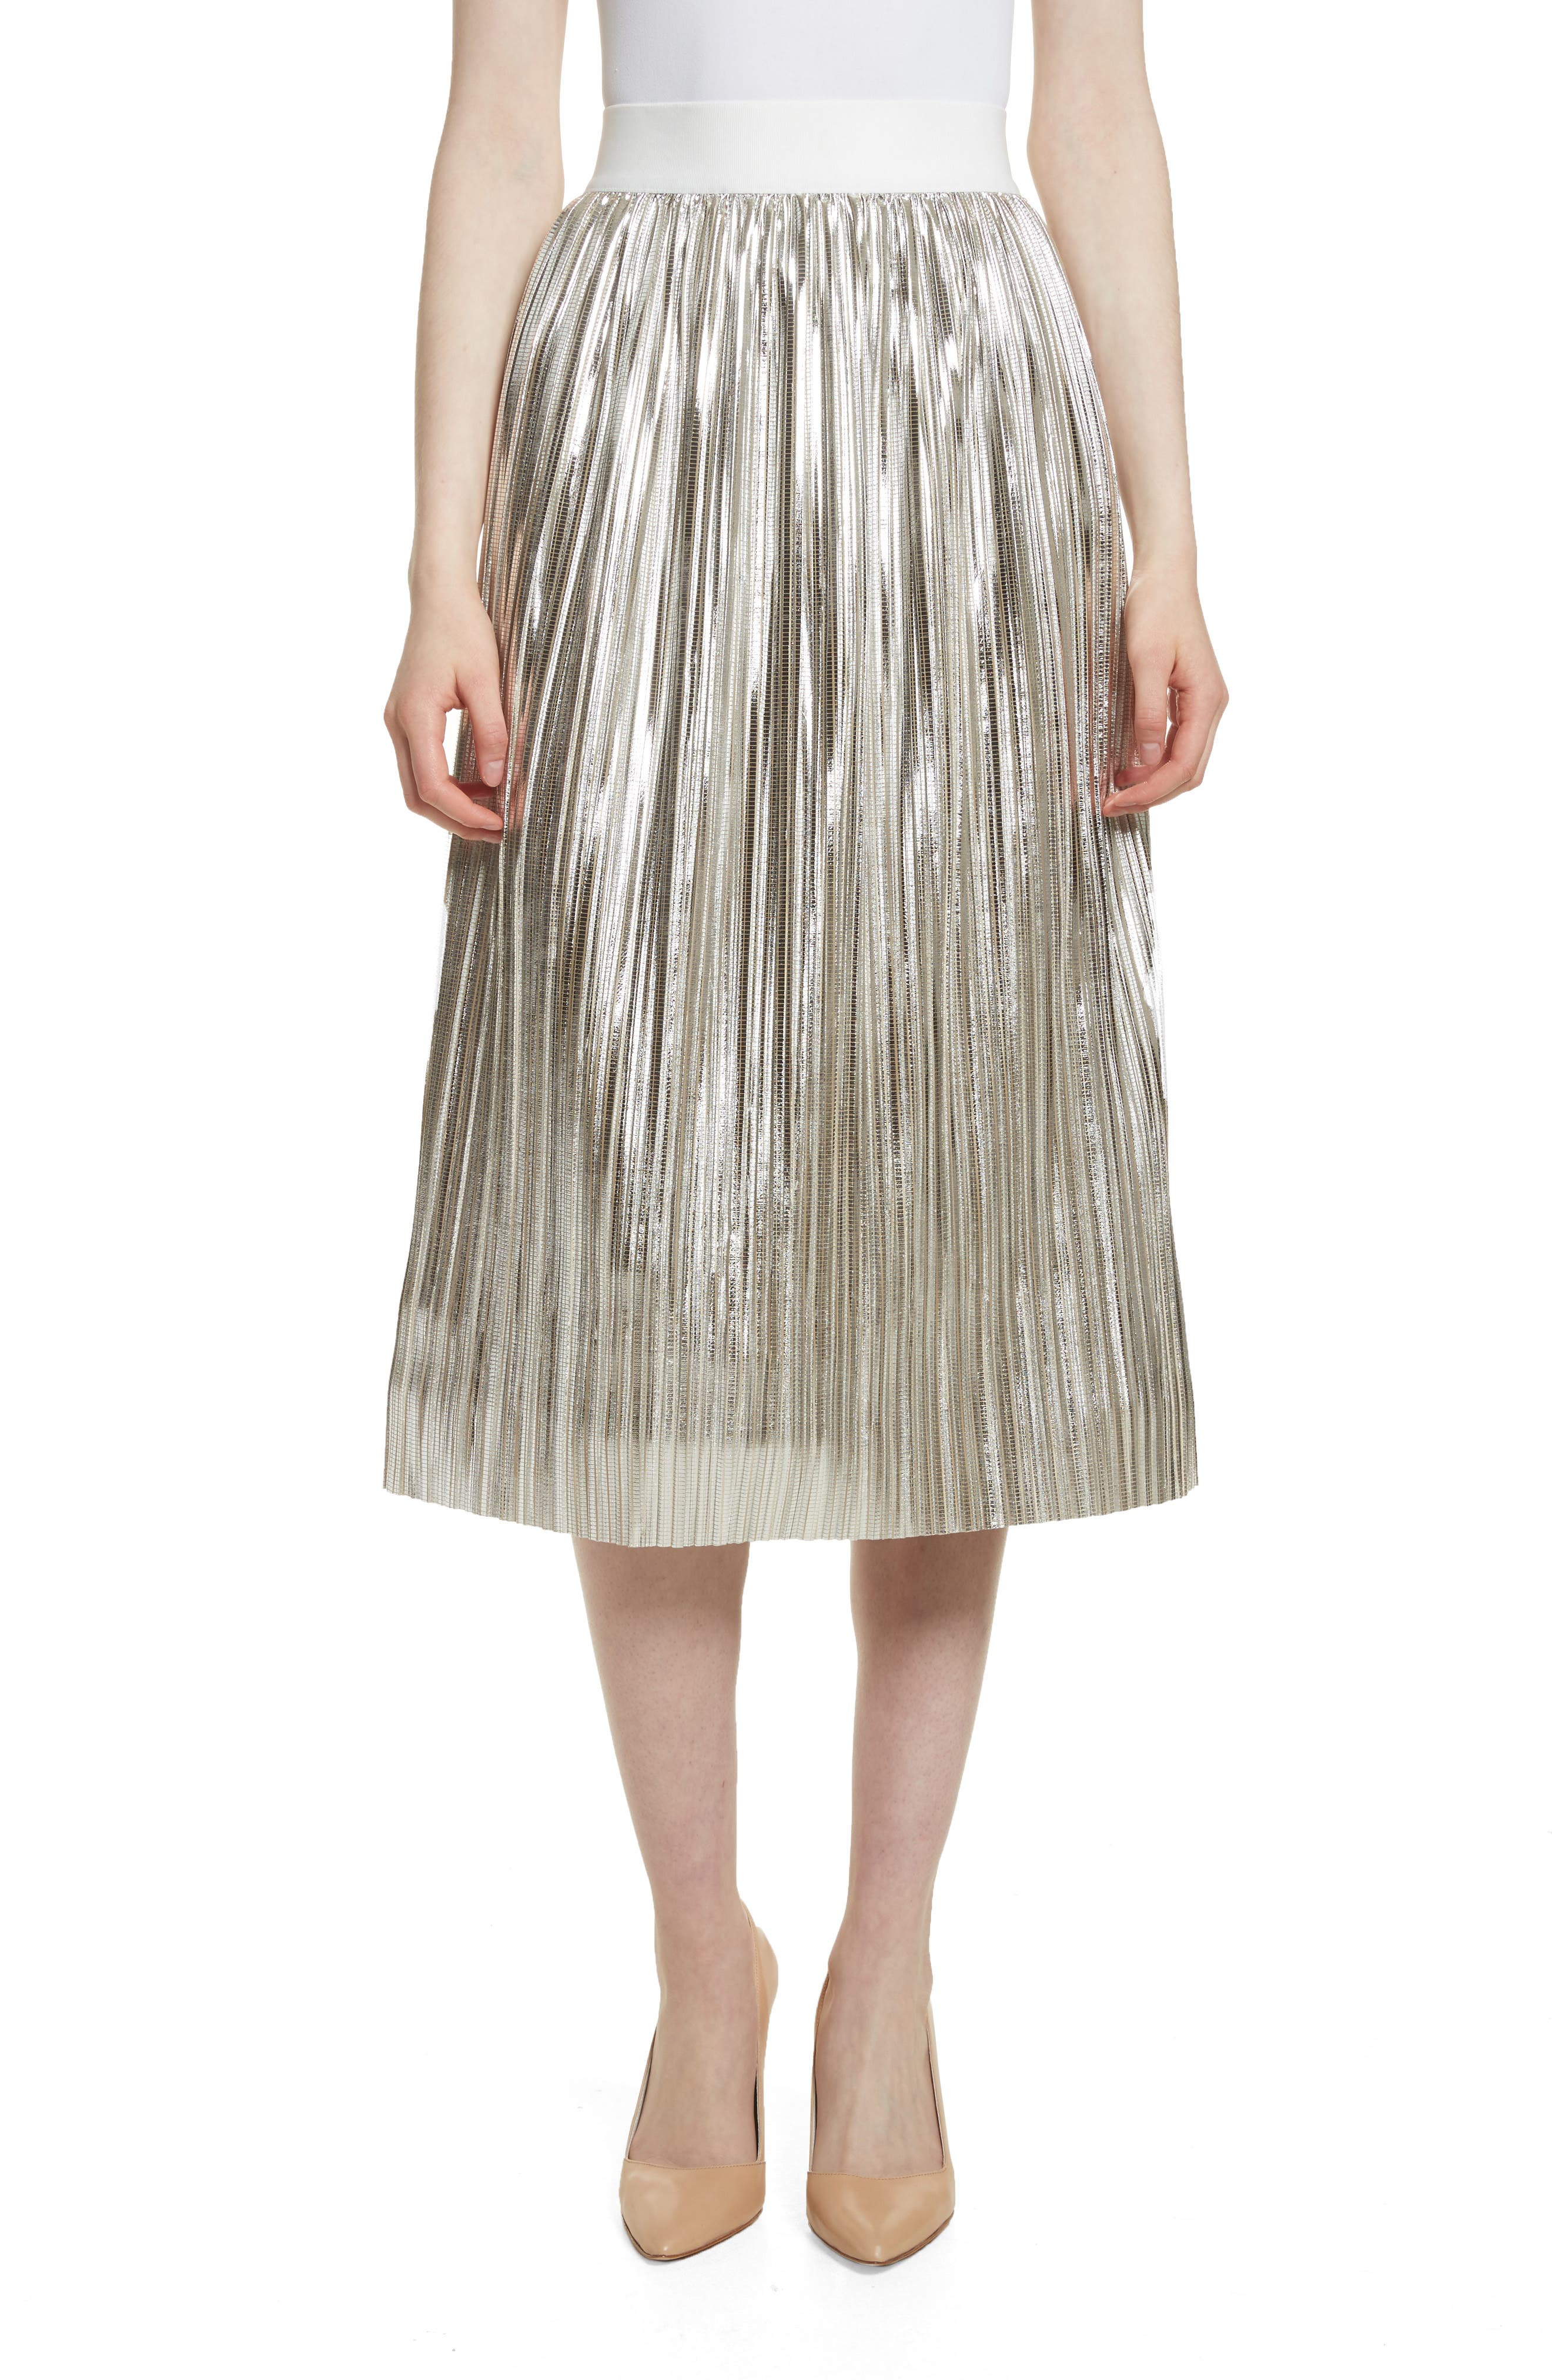 Mikaela Pleat Metallic Skirt,                         Main,                         color, Silver Metallic